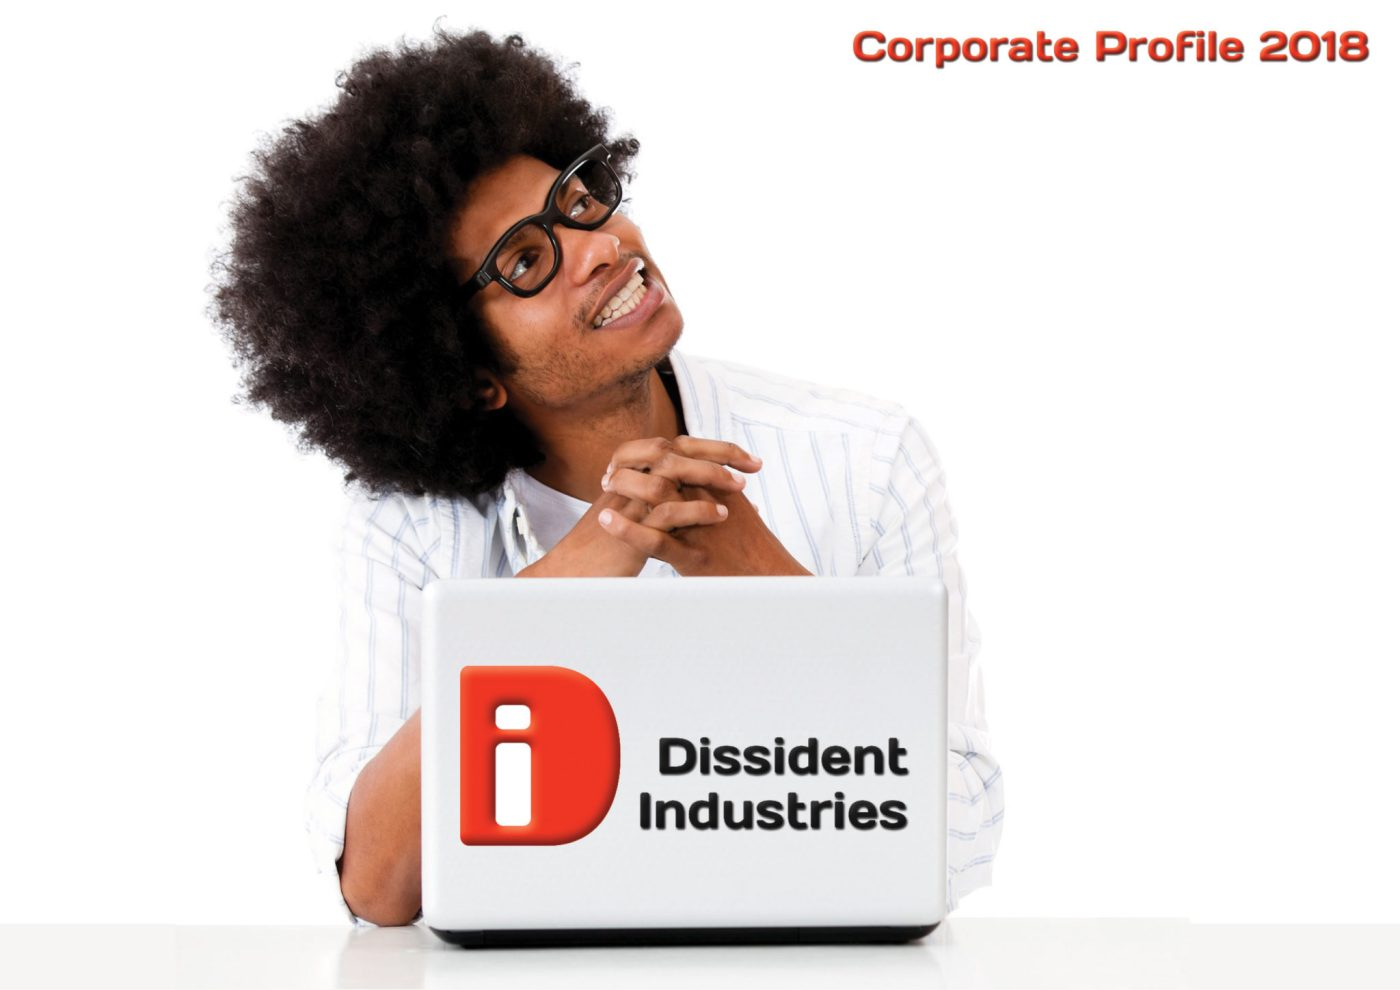 DI Corporate Profile 2018 Cropped-01